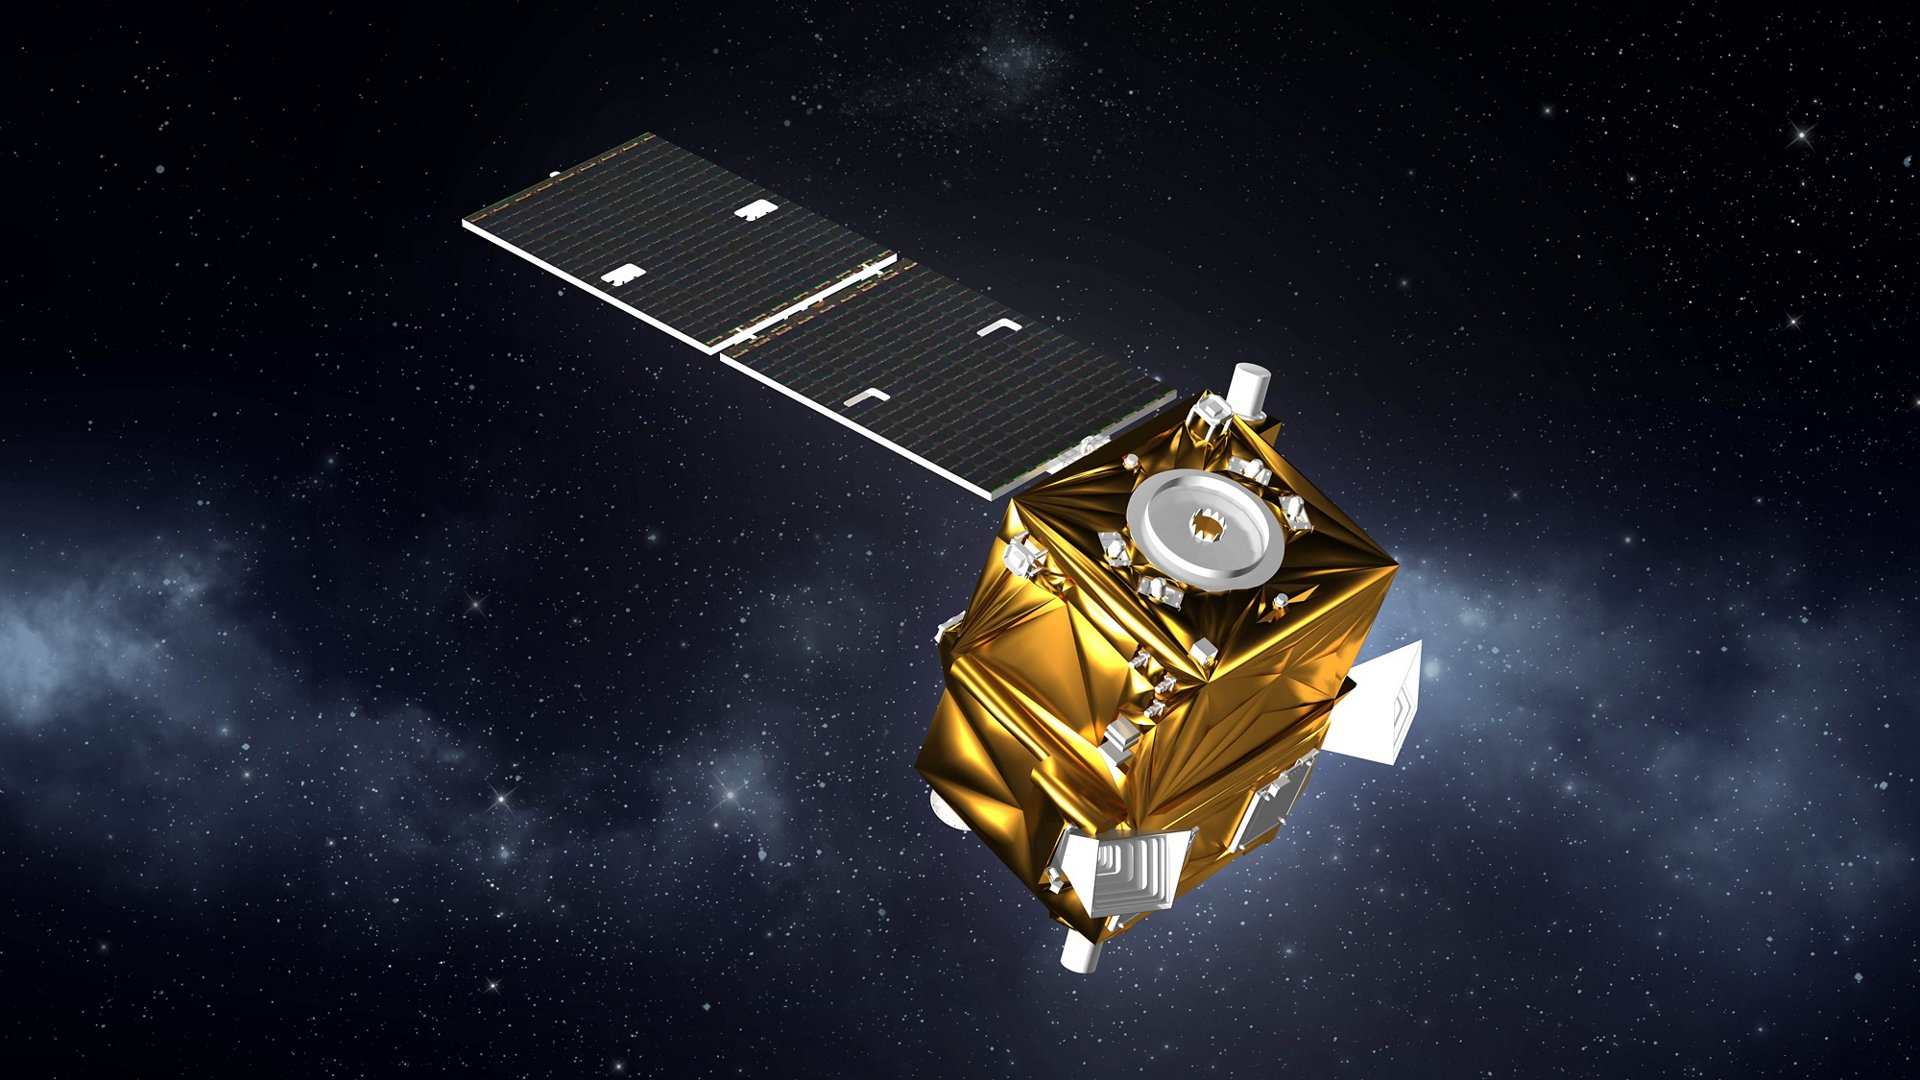 A representation of Vietnam's first remote sensing satellite – the Airbus-produced VNREDSat-1 – in orbit.